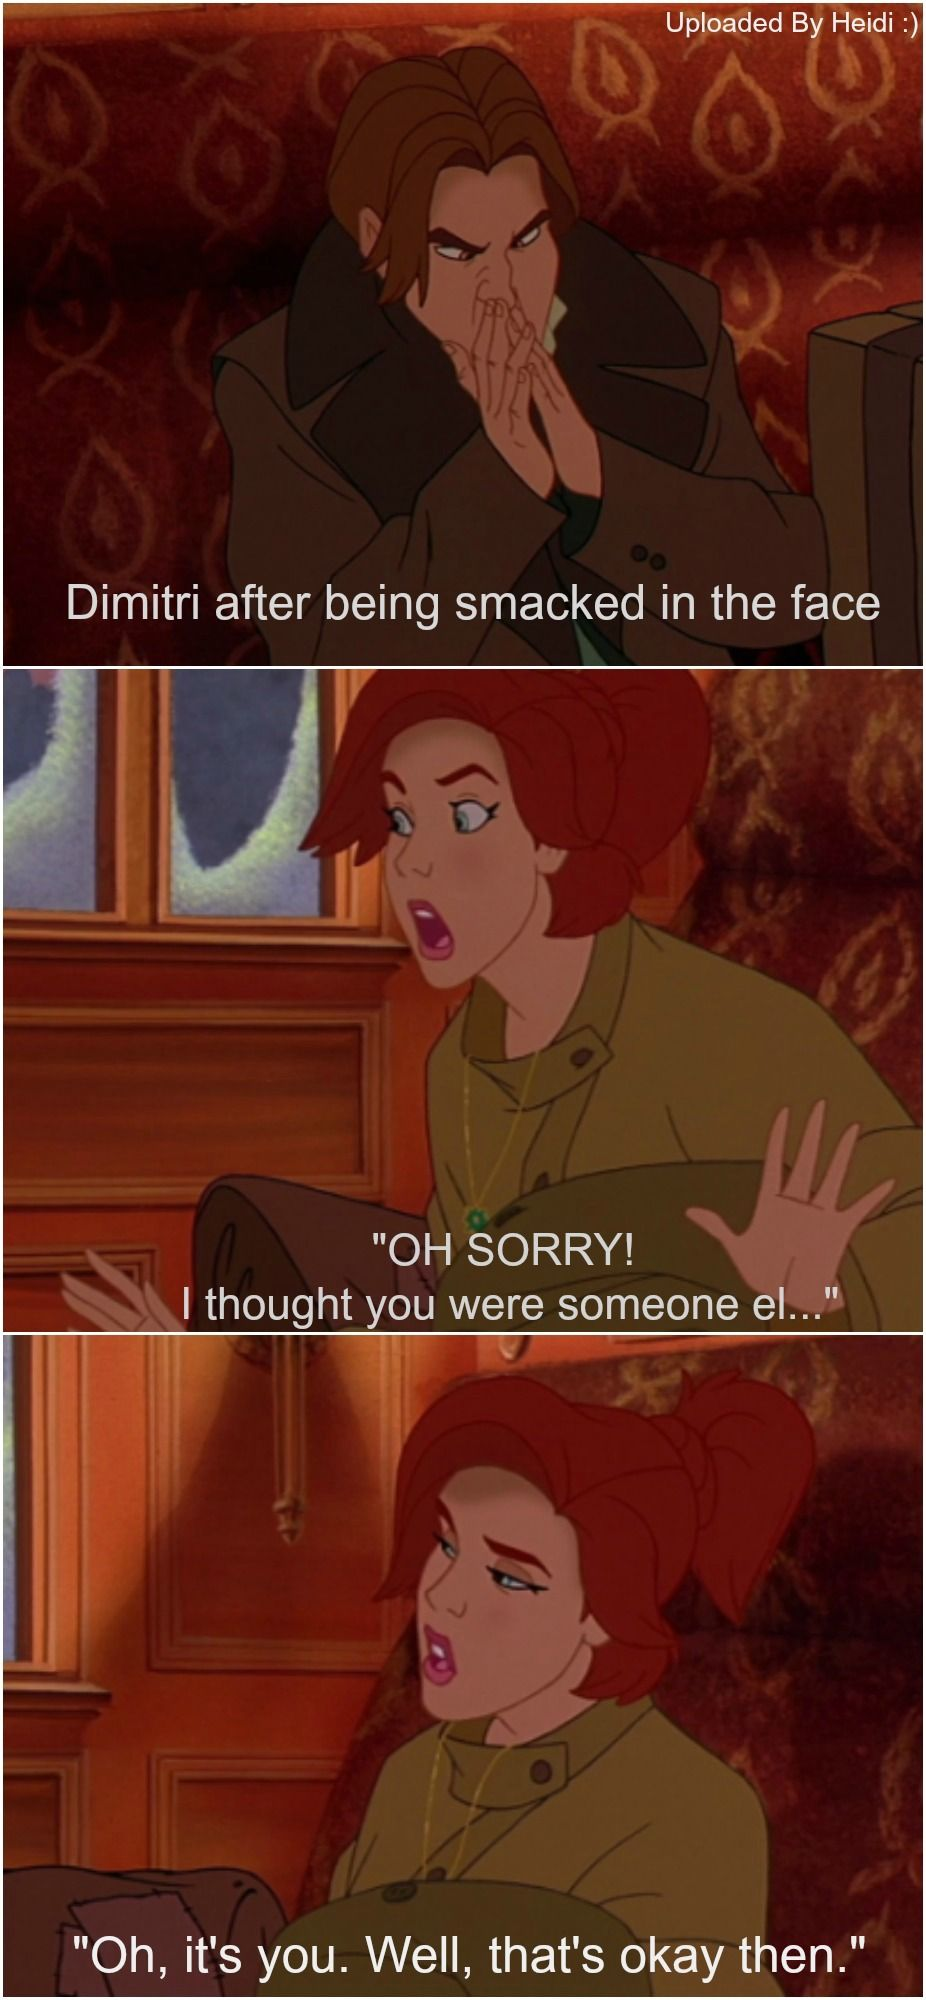 HAHAHA, gotta love Anastasia. I know its not Disney, bit its one of the best animated movies I have